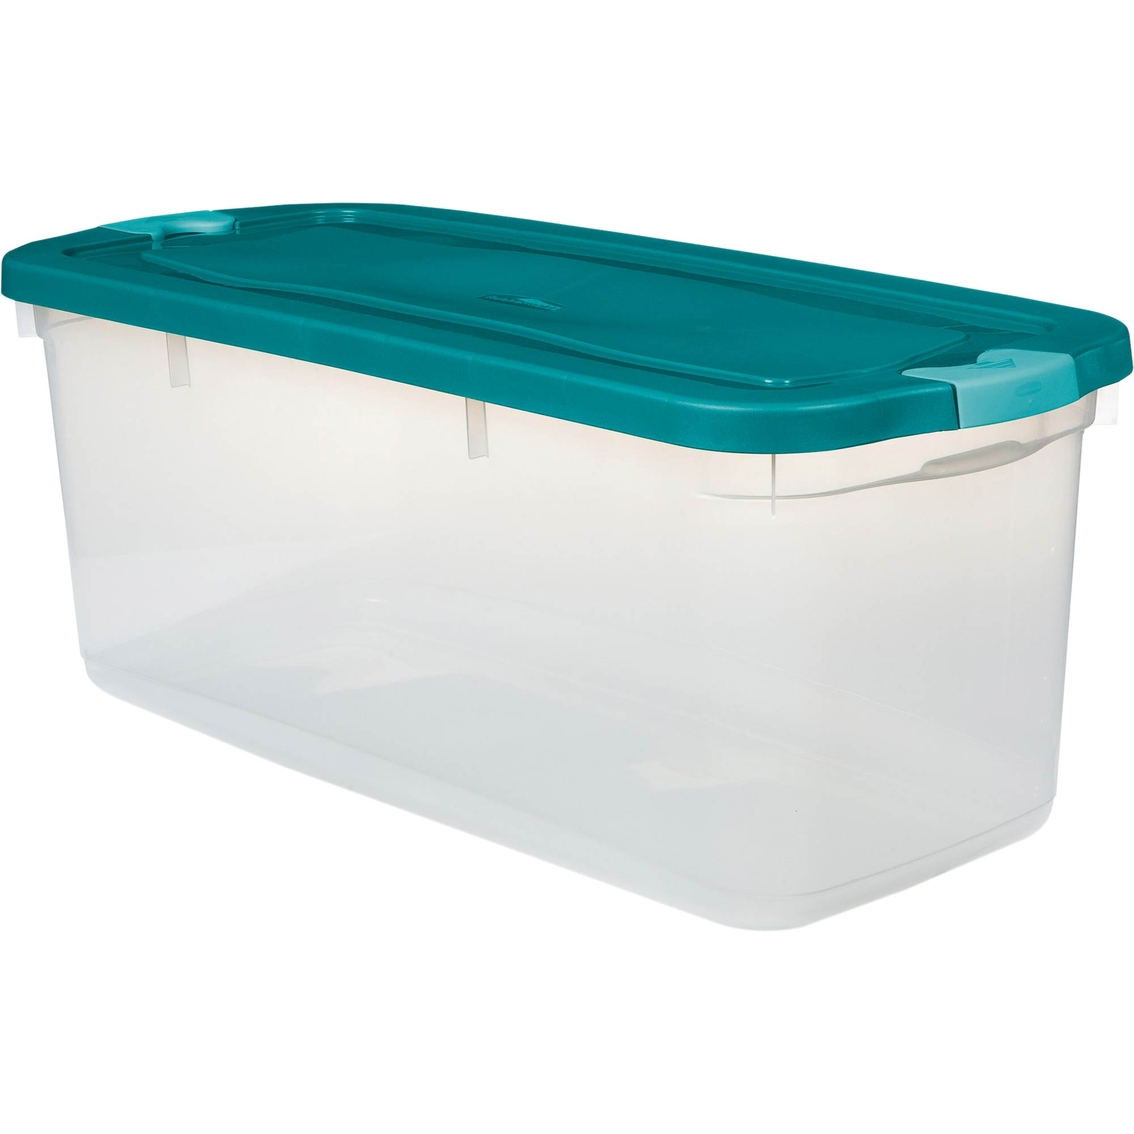 Charmant Rubbermaid Roughneck Clear 95 Qt. Clear Tote With Latching Lid